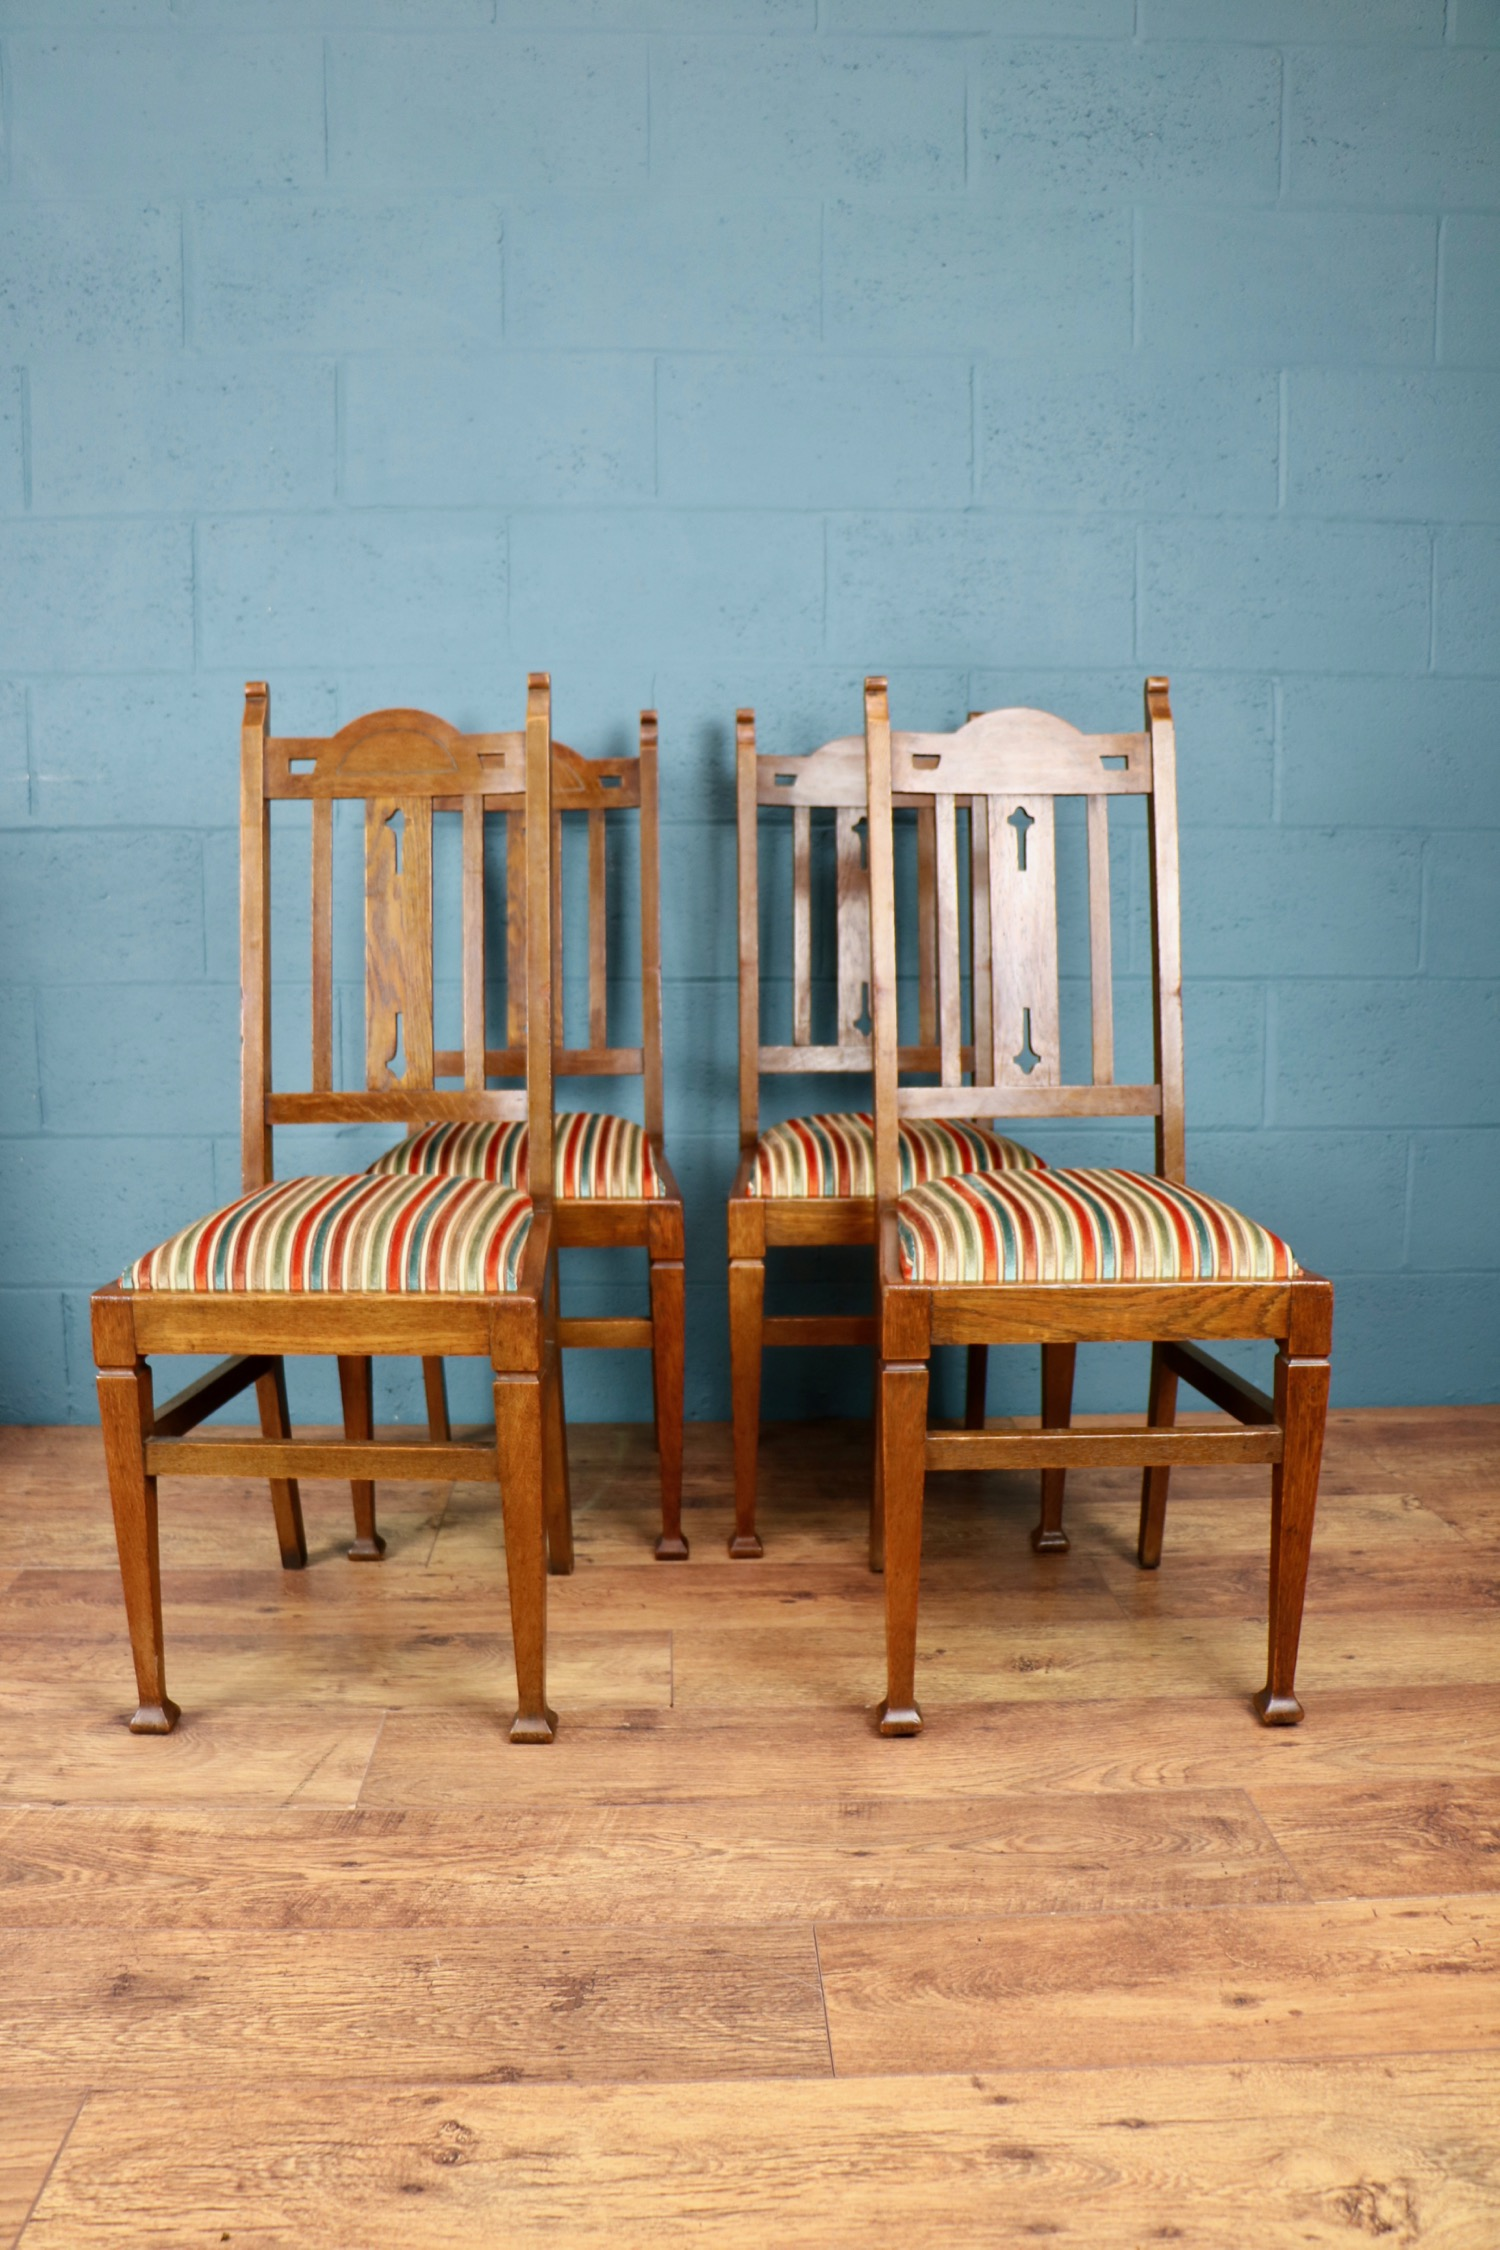 - The chairs are absolutely beautiful and work very well with the new decor. Thanks very much from a very happy customer. Lisa, Shrewsbury